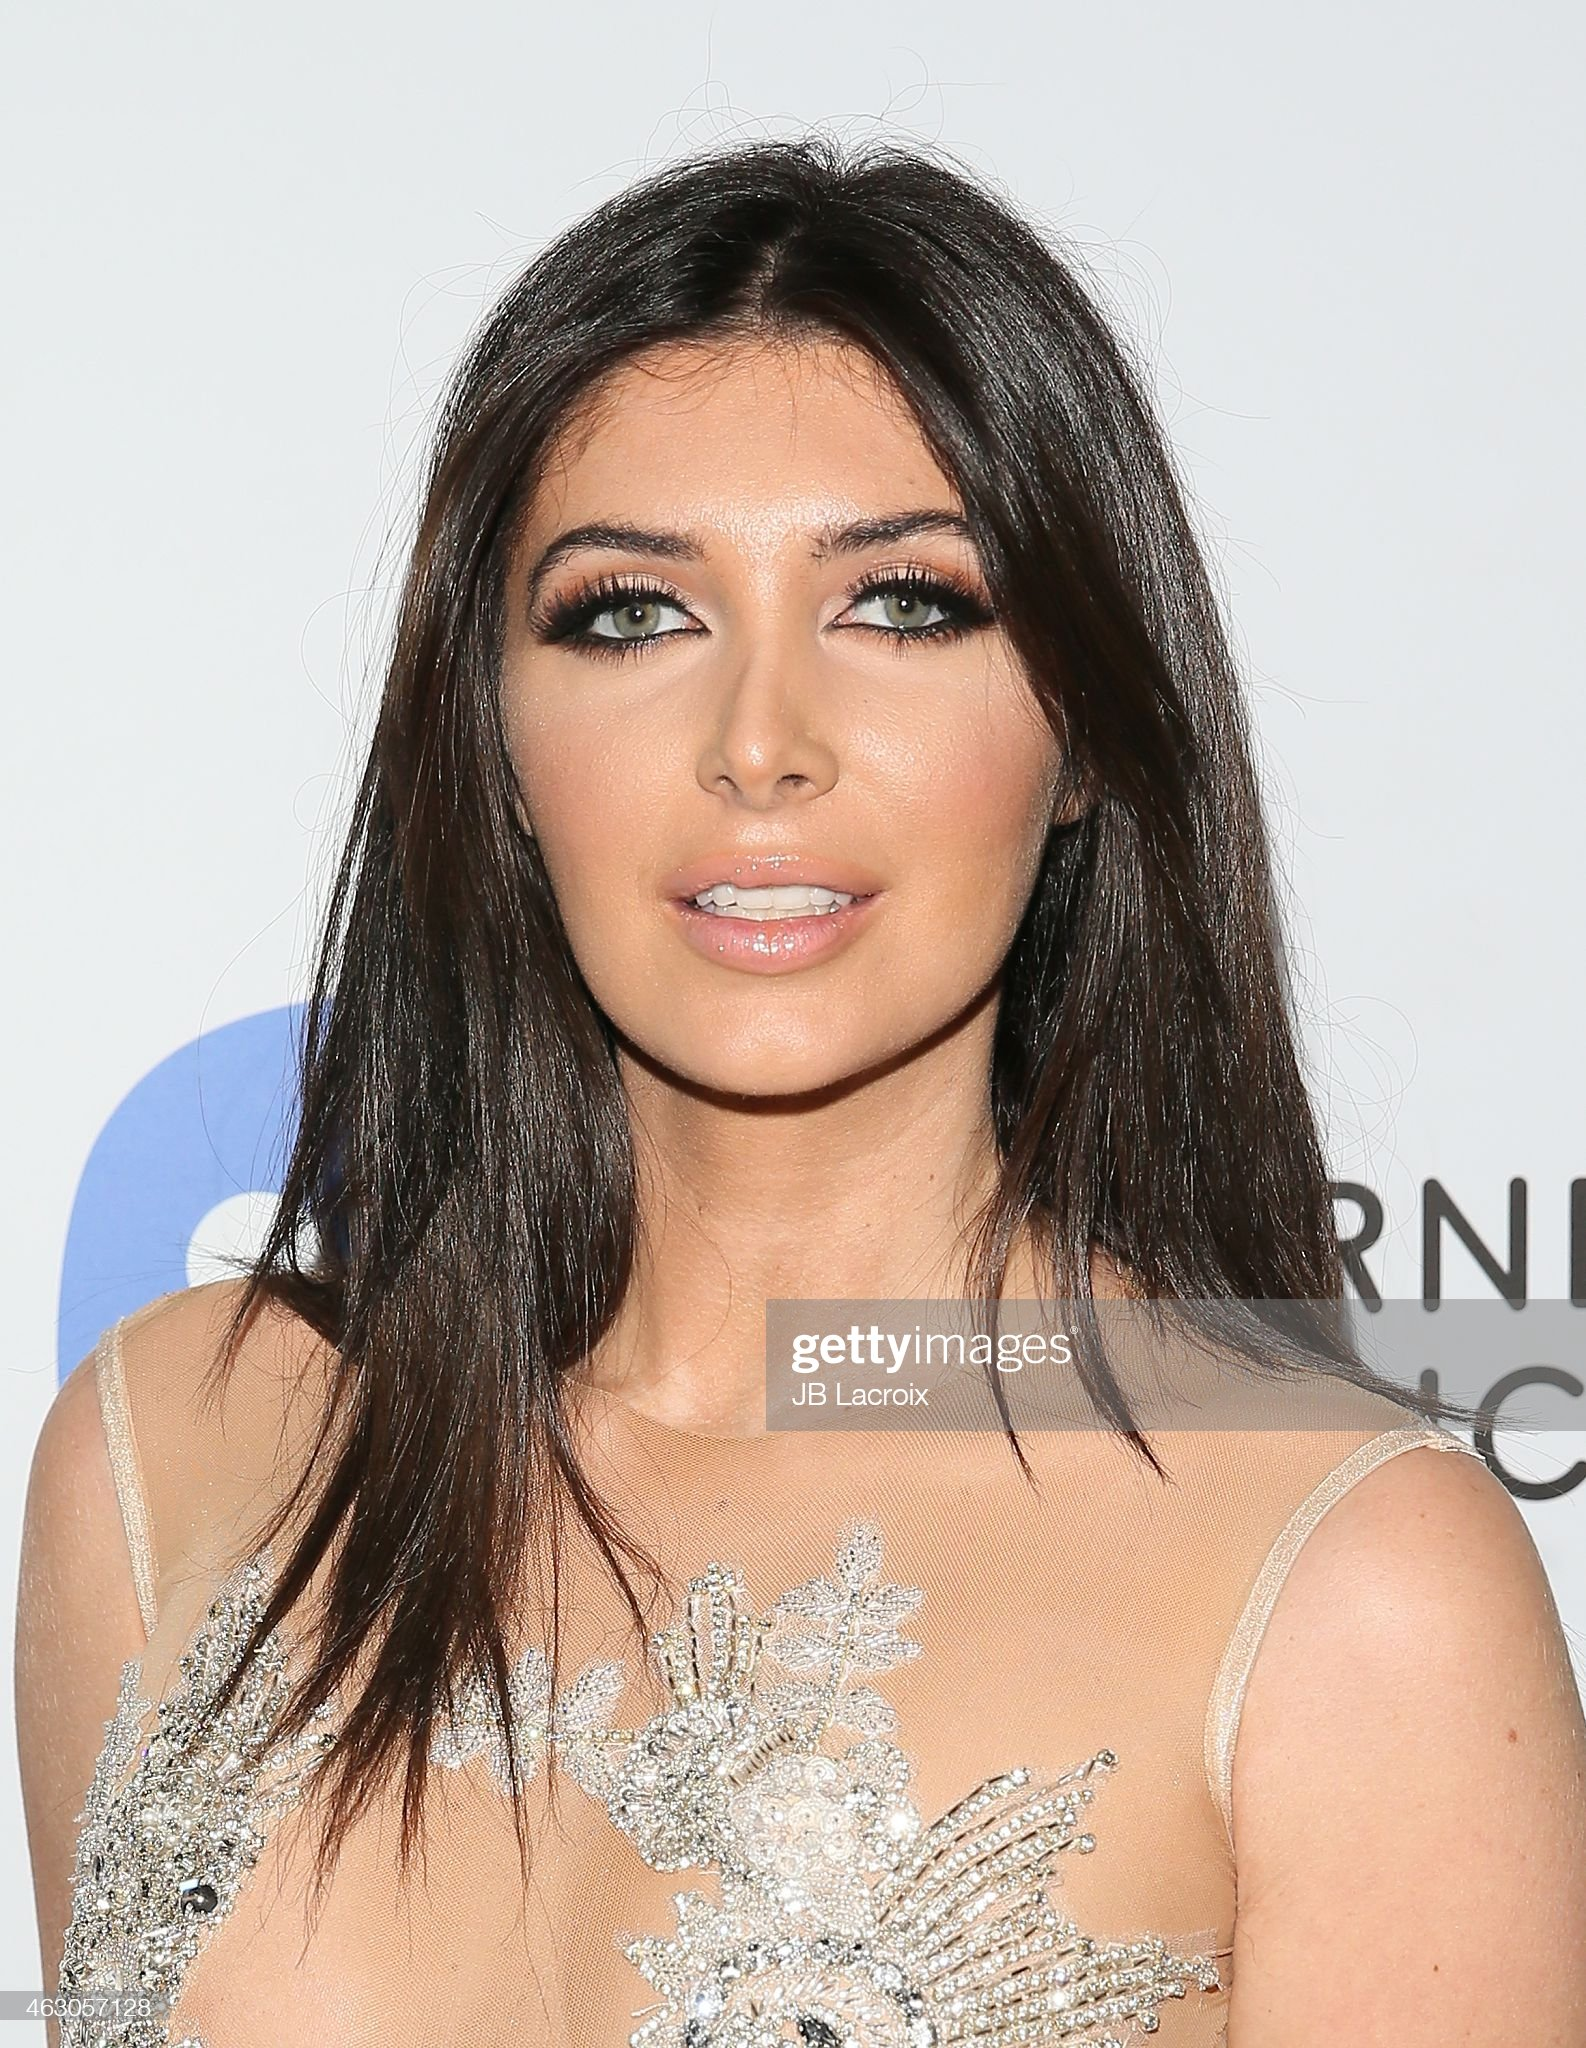 Ojos verdes - Famosas y famosos con los ojos de color VERDE Brittny-gastineau-attends-the-warner-music-group-annual-grammy-at-picture-id463057128?s=2048x2048